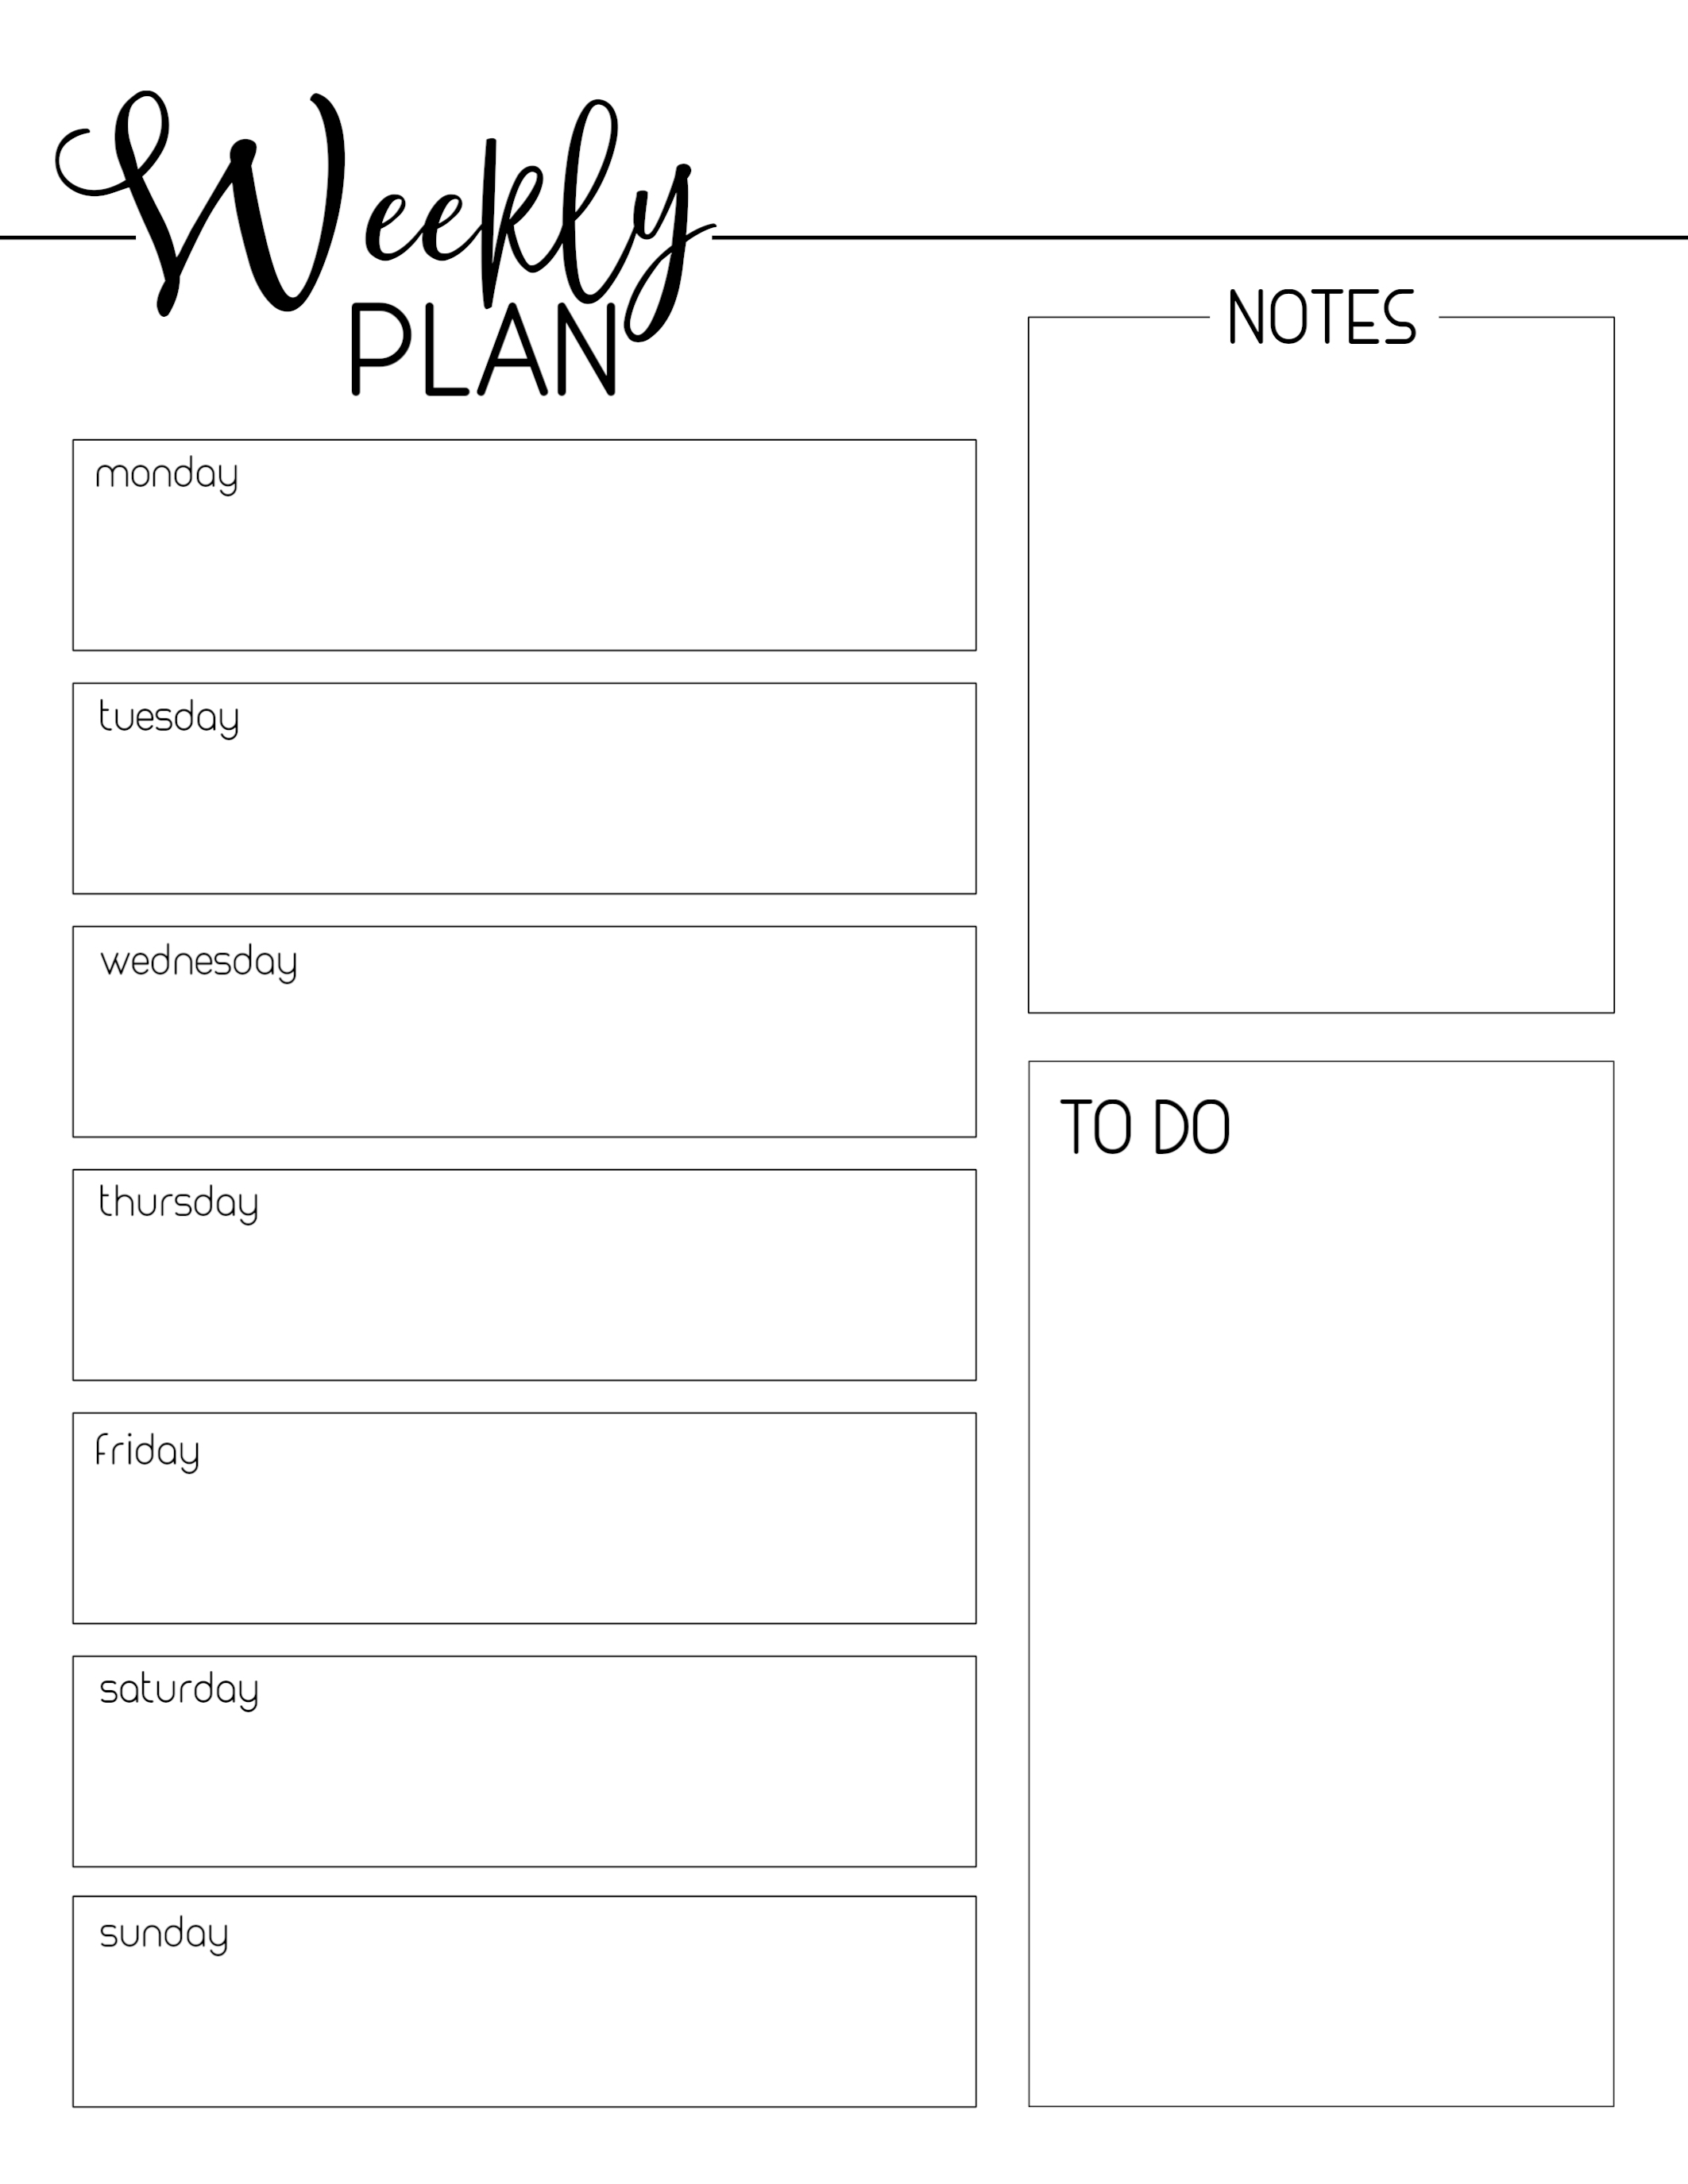 Free Printable Weekly Planner Template Schedule Paper Trail Design pertaining to Weekly Schedule Template Free To Print